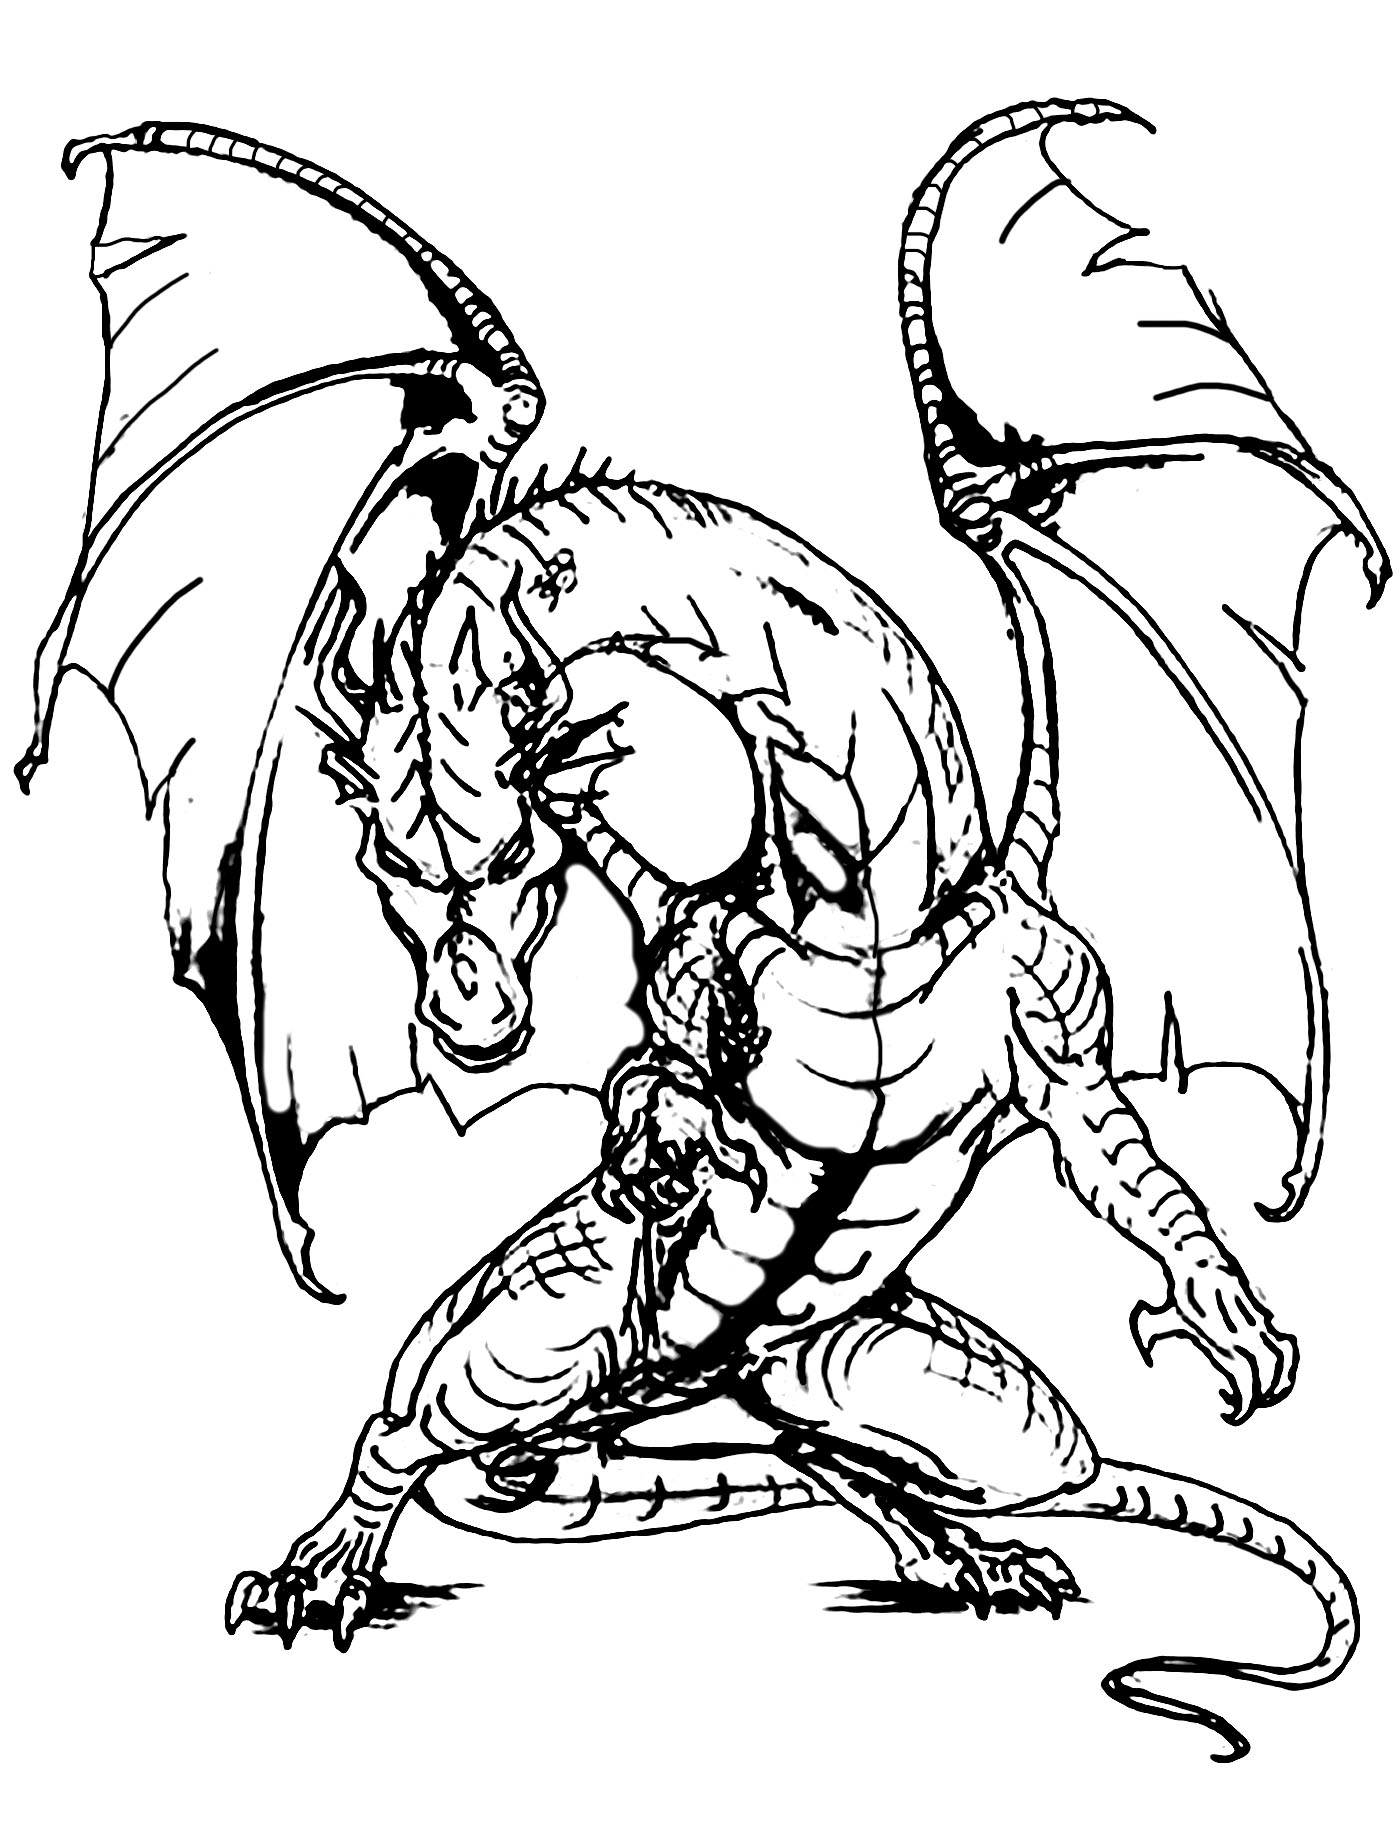 giant coloring pages for adults - giant dragon myths legends coloring pages for adults